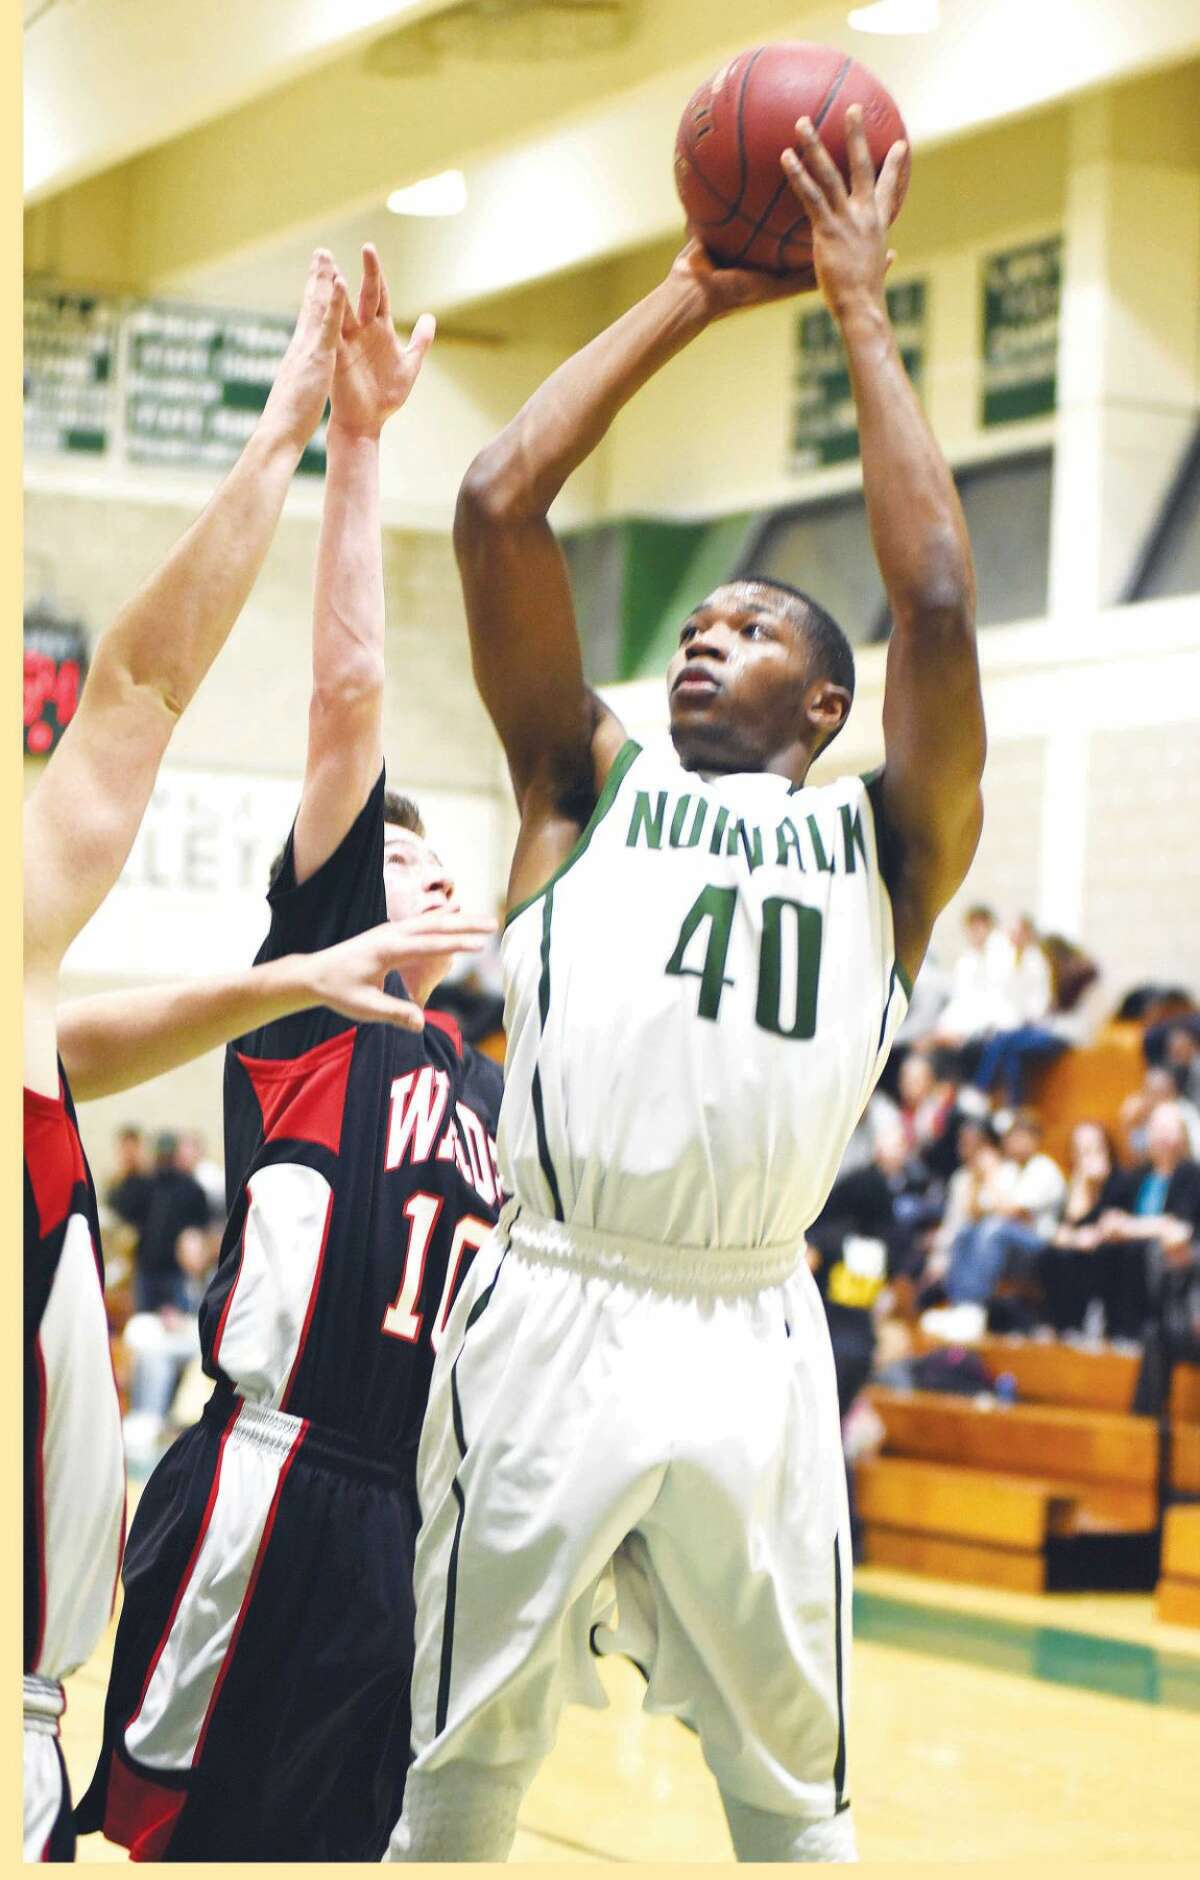 Hour photo/John Nash - Norwalk's Jakari Gainer (40) puts up a shot during Tuesday's game against Fairfield Warde.